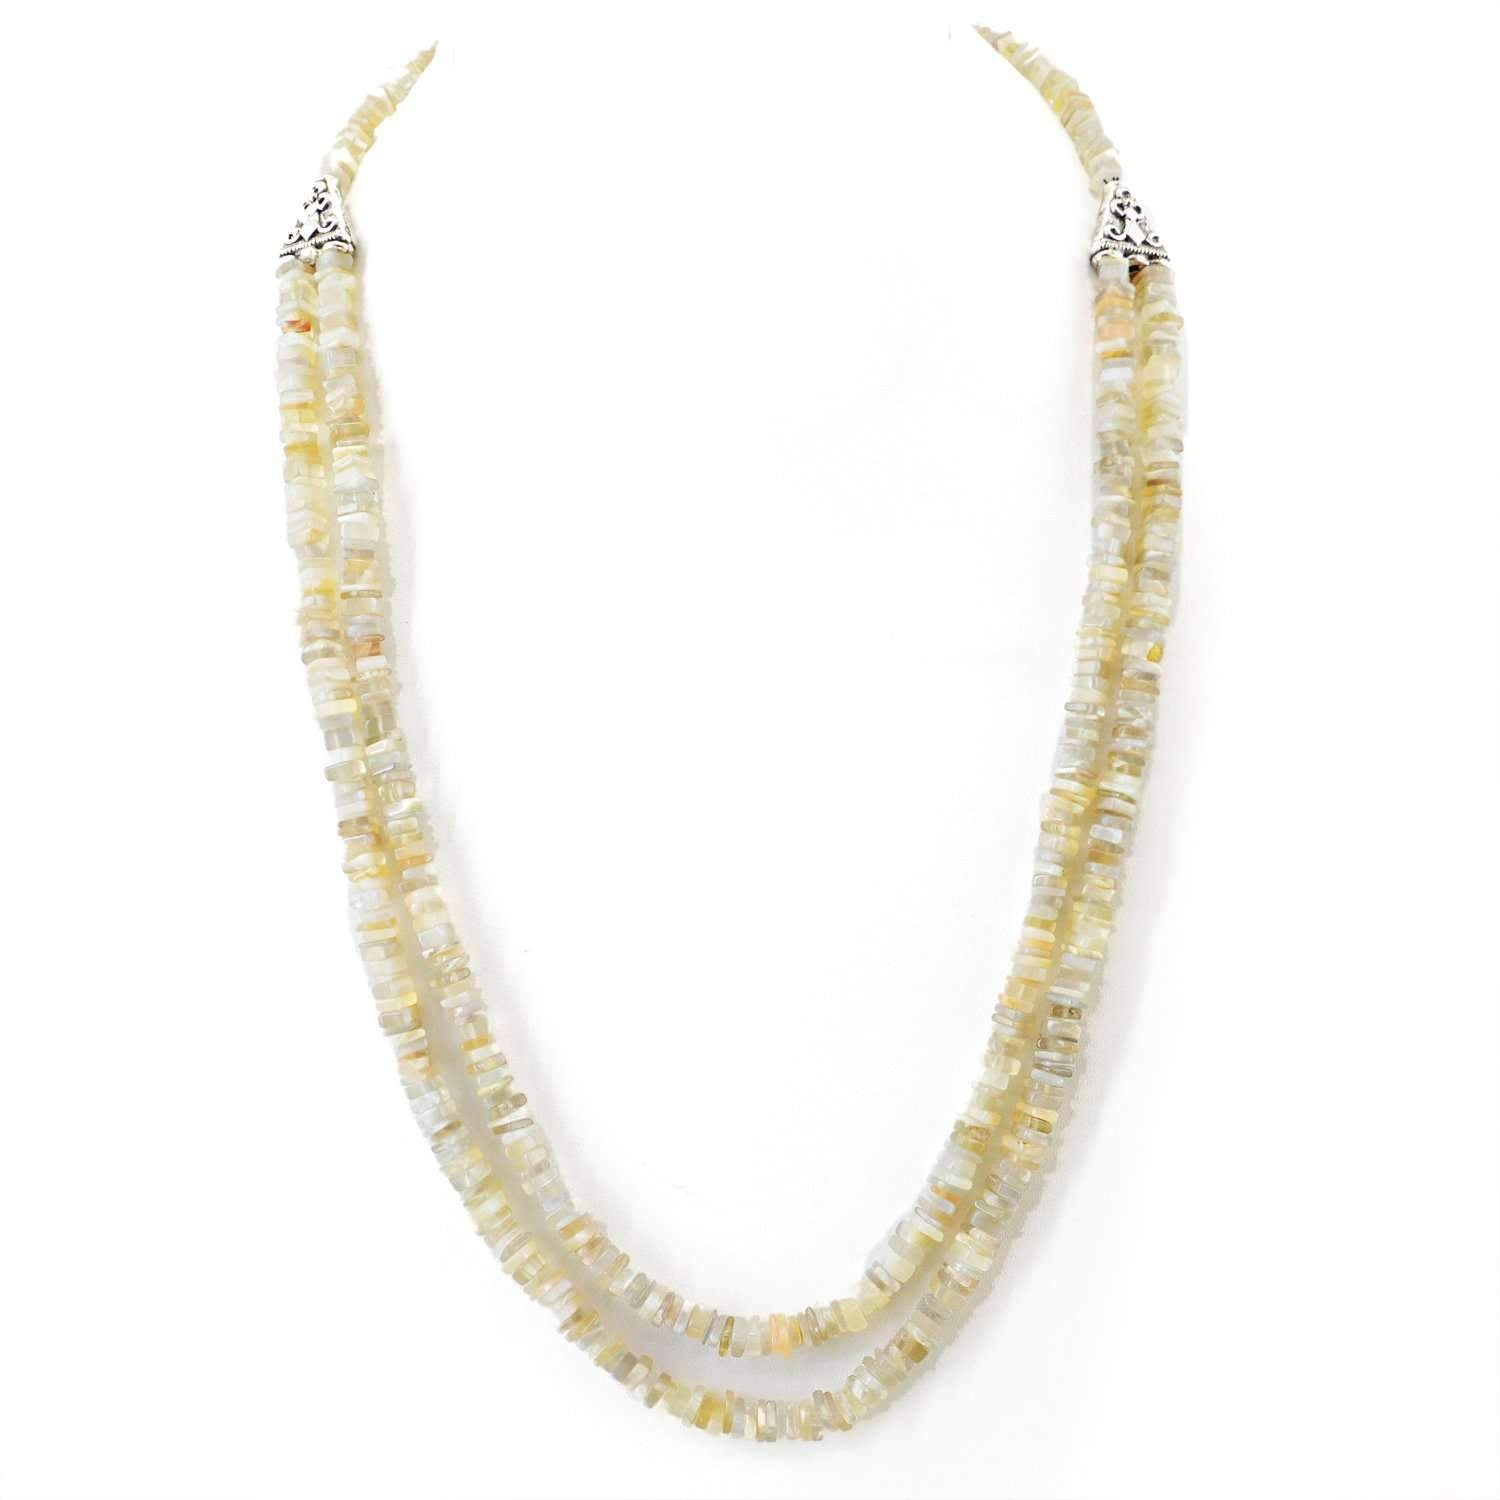 gemsmore:2 Strand Agate Necklace Natural Untreated Beads